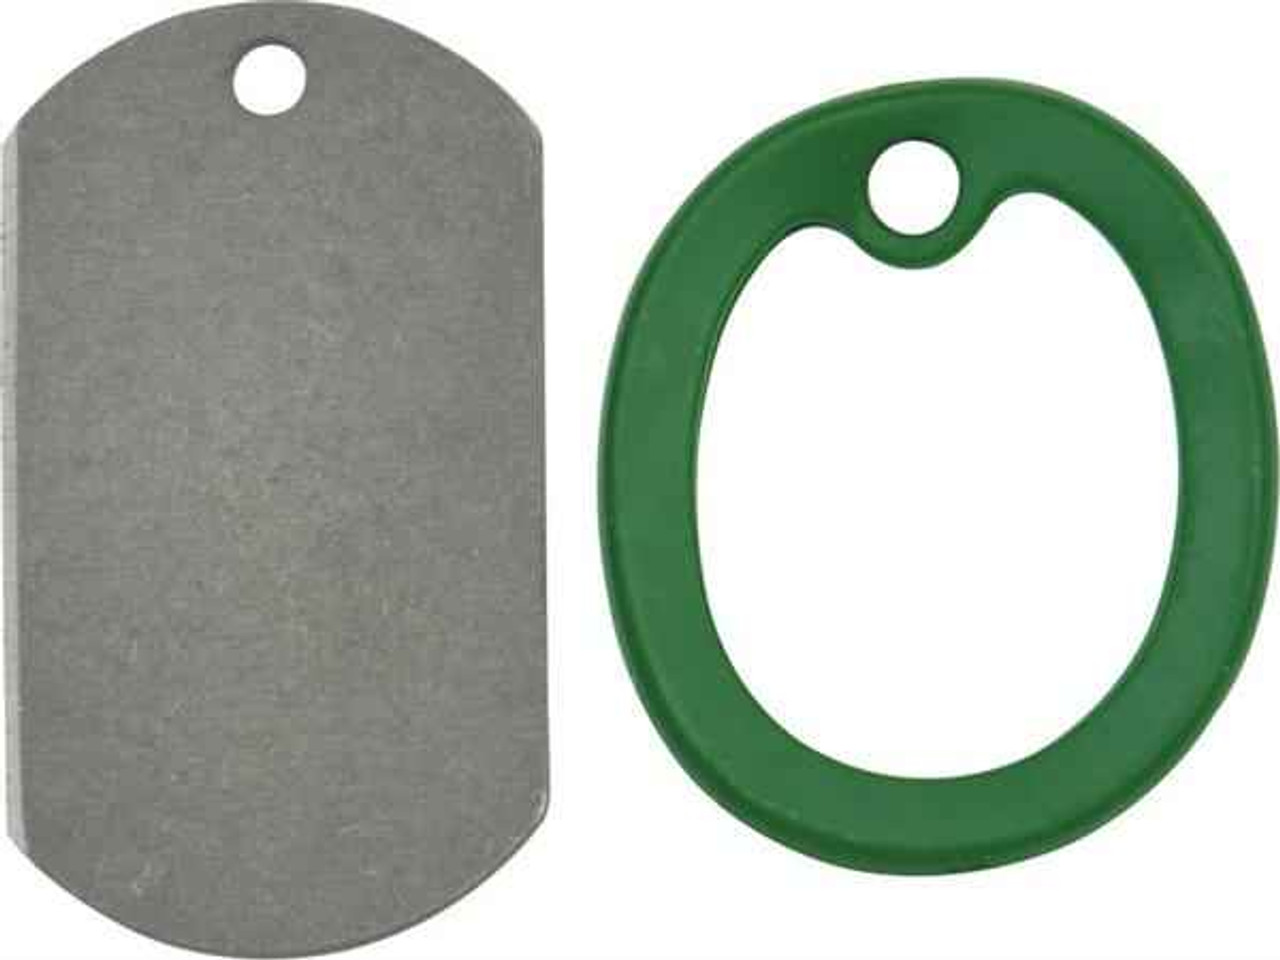 The Original Dog Tag Knife, Titanium Blade, Green Rubber Frame, DT001G